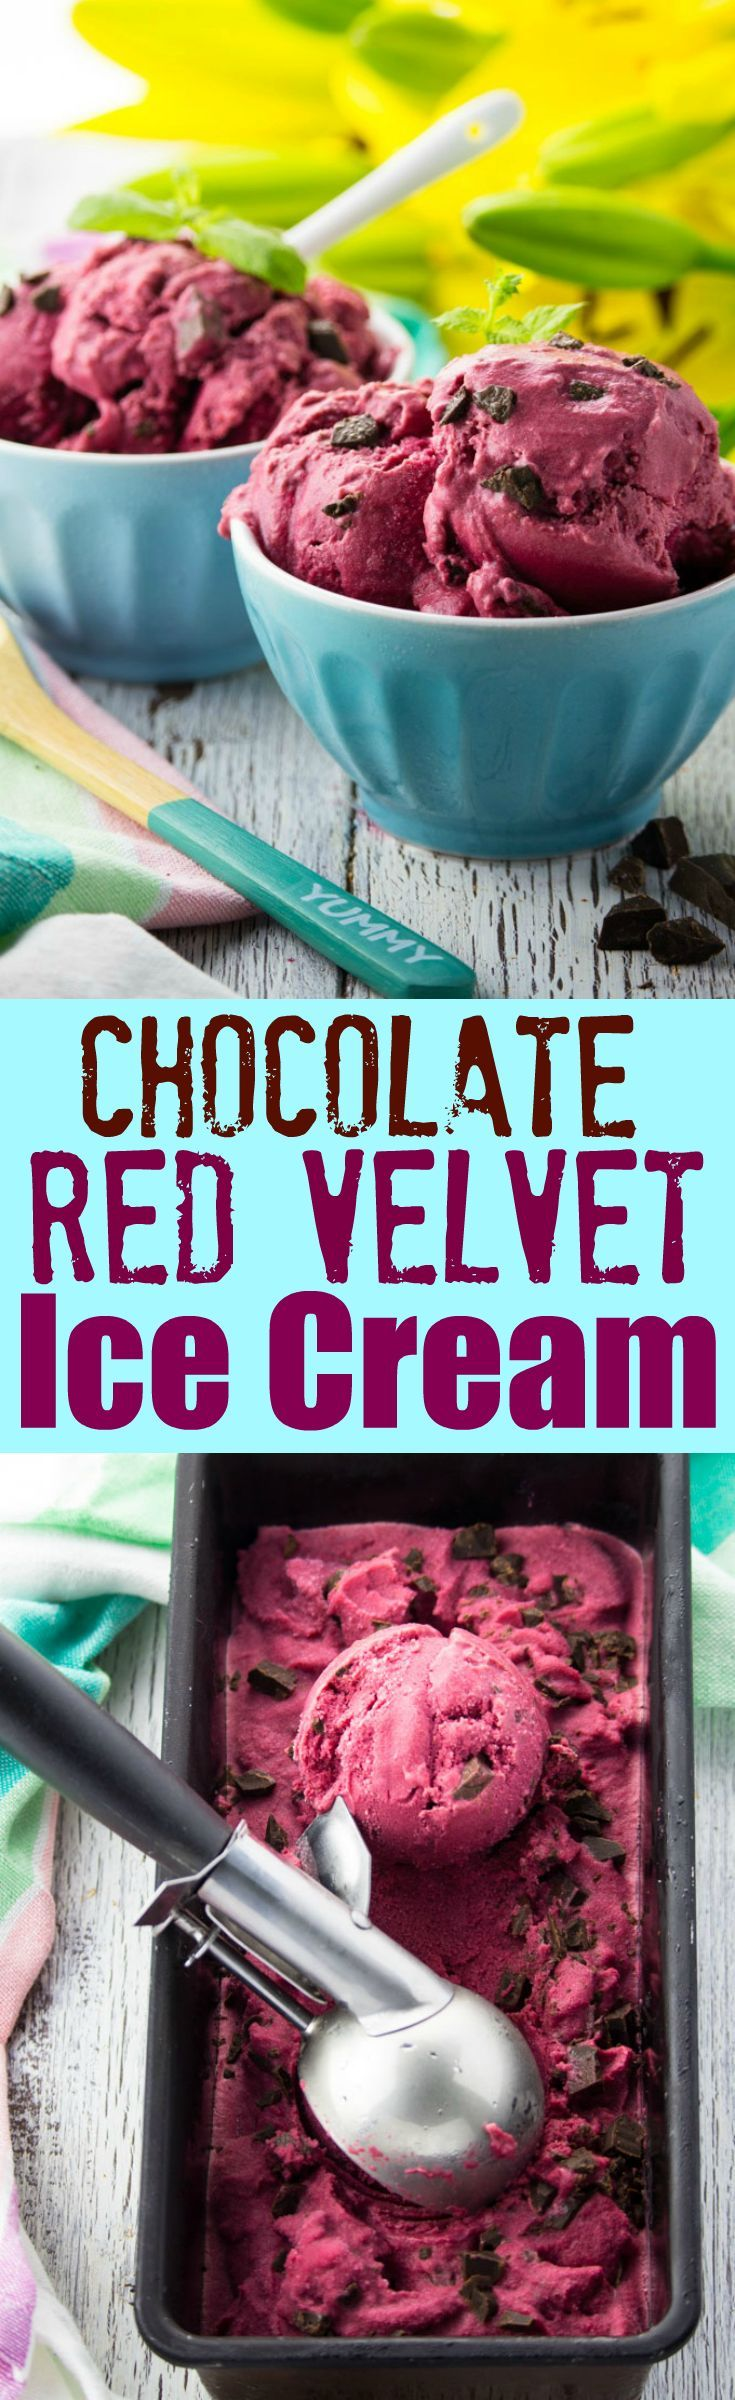 This vegan chocolate chunk beet ice cream with coconut milk is packed with flavor! Don't miss out on this unusual combo, which is just perfect for summer! You could also call it natural vegan red velvet ice cream if you want.